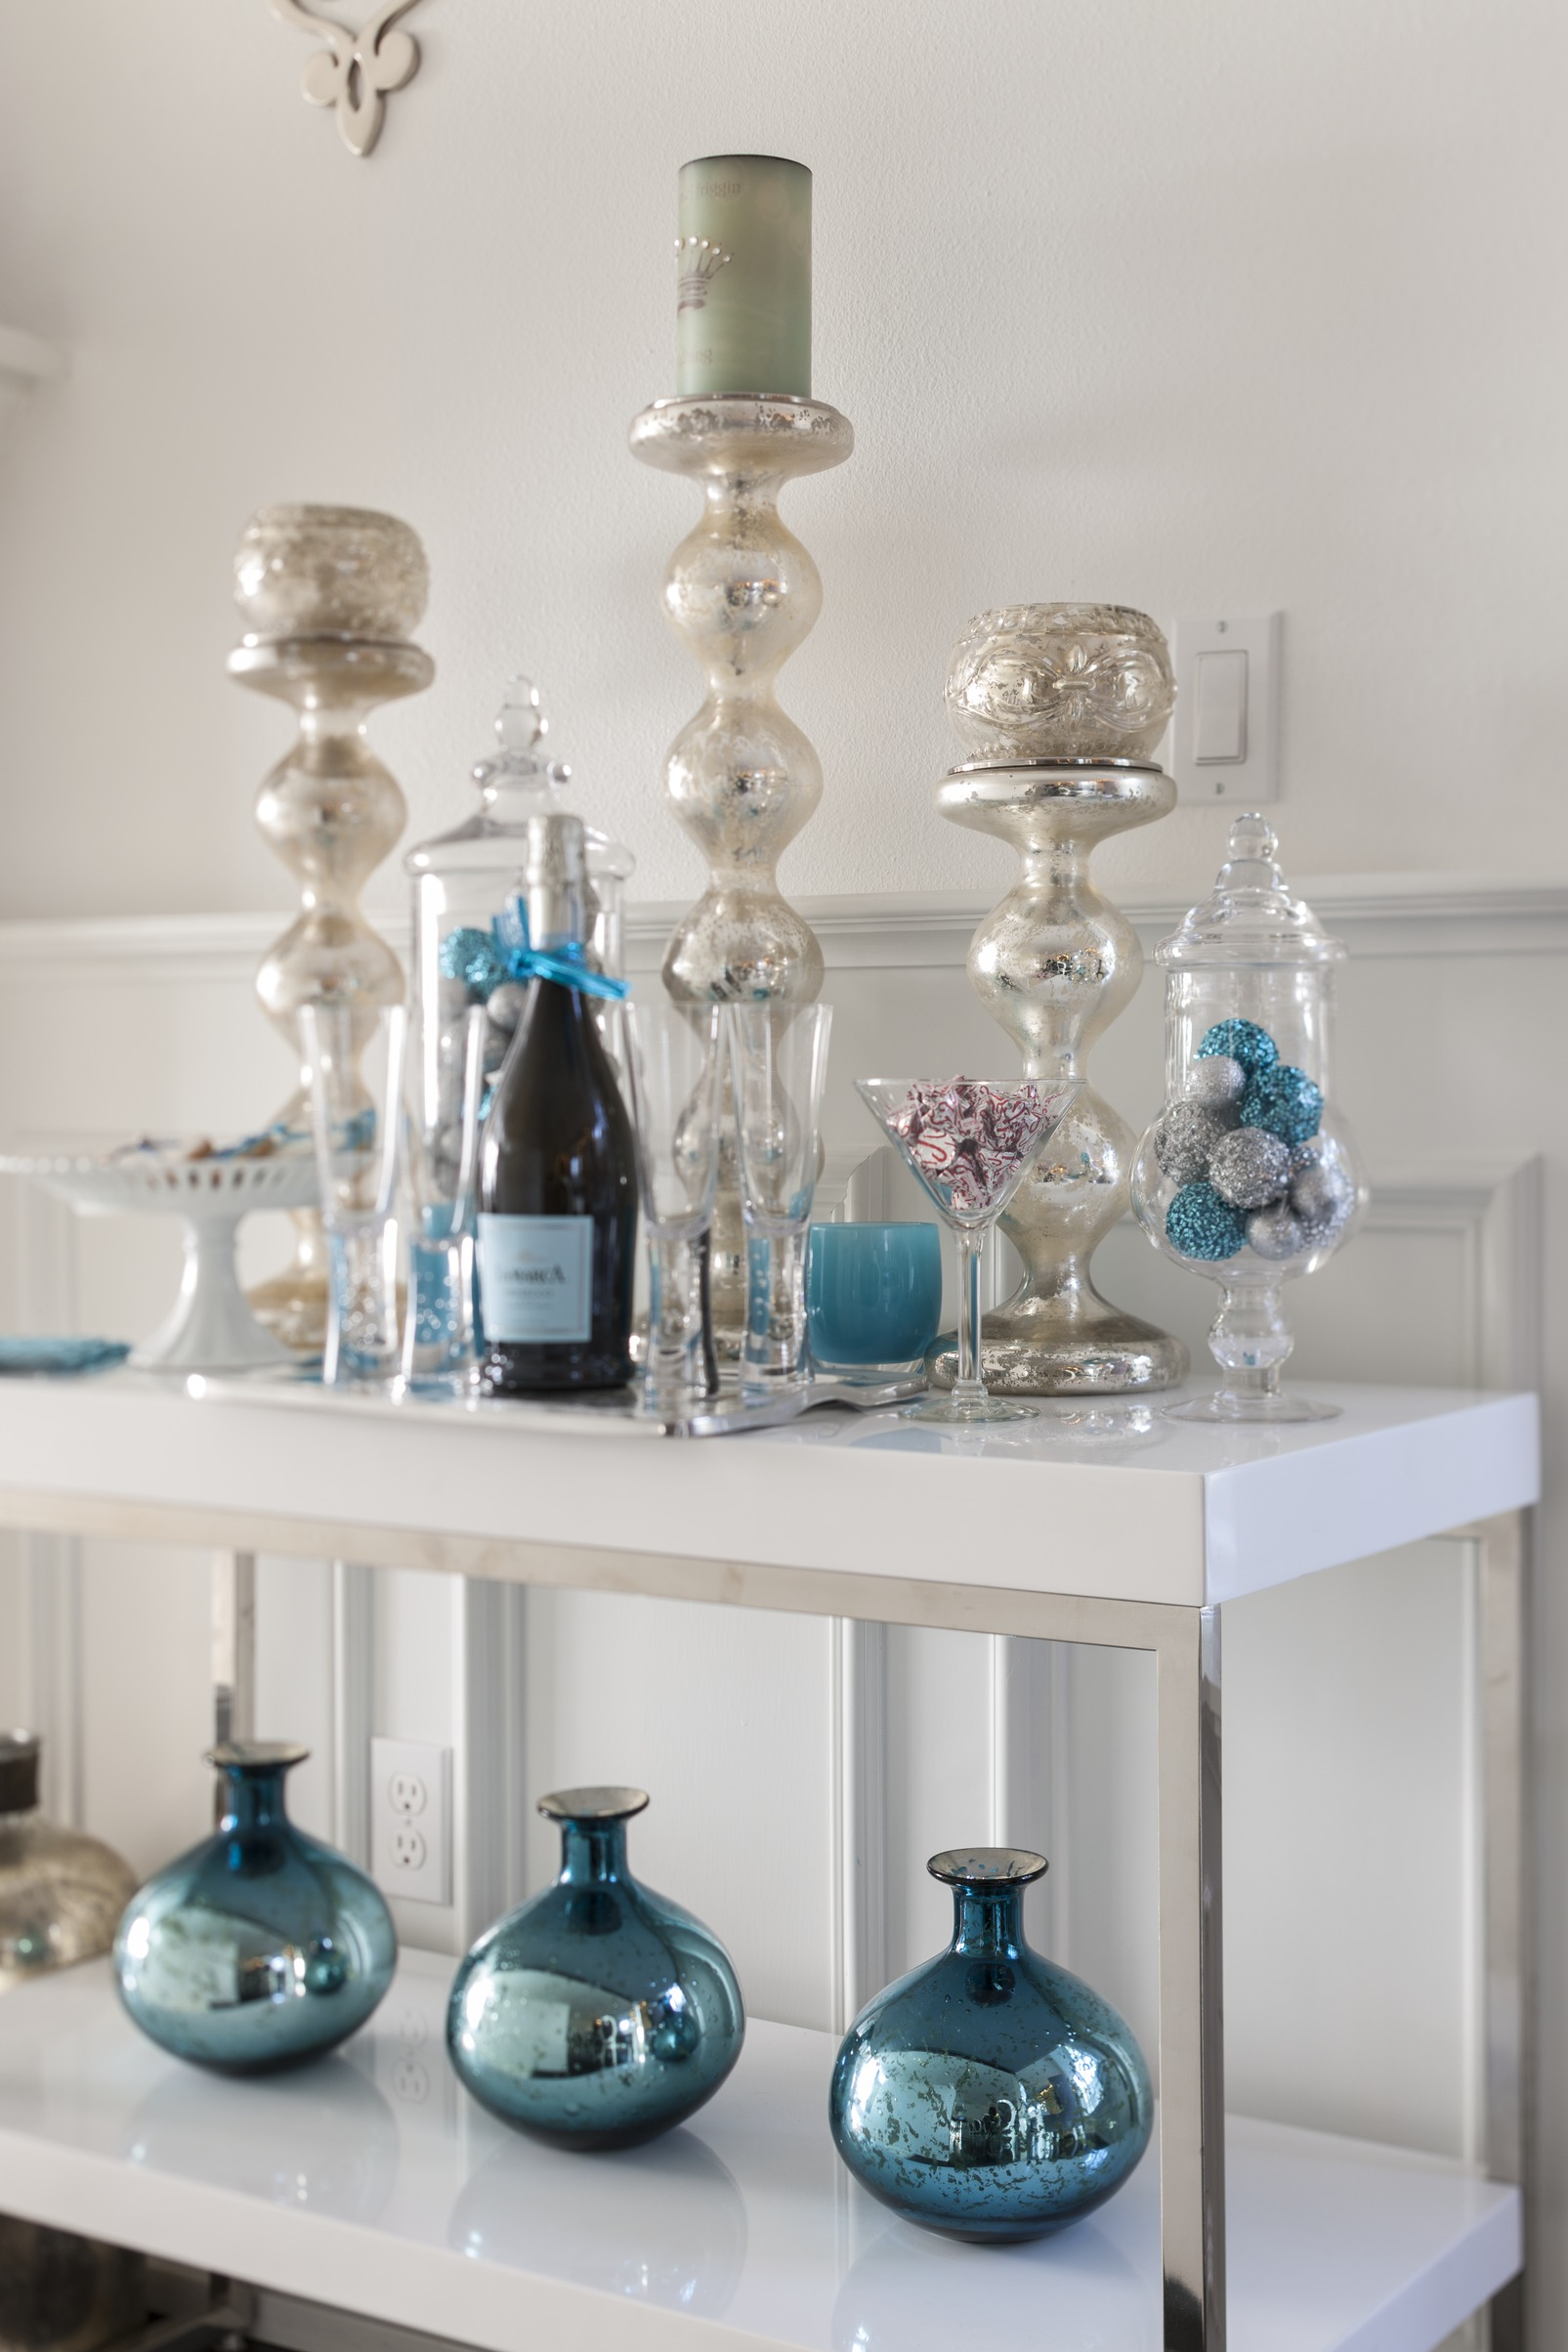 A Sideboard In The Living Room Serves As Bar Decked Out Plenty Of Gleaming Holiday Accoutrements All Blue White And Silver Course